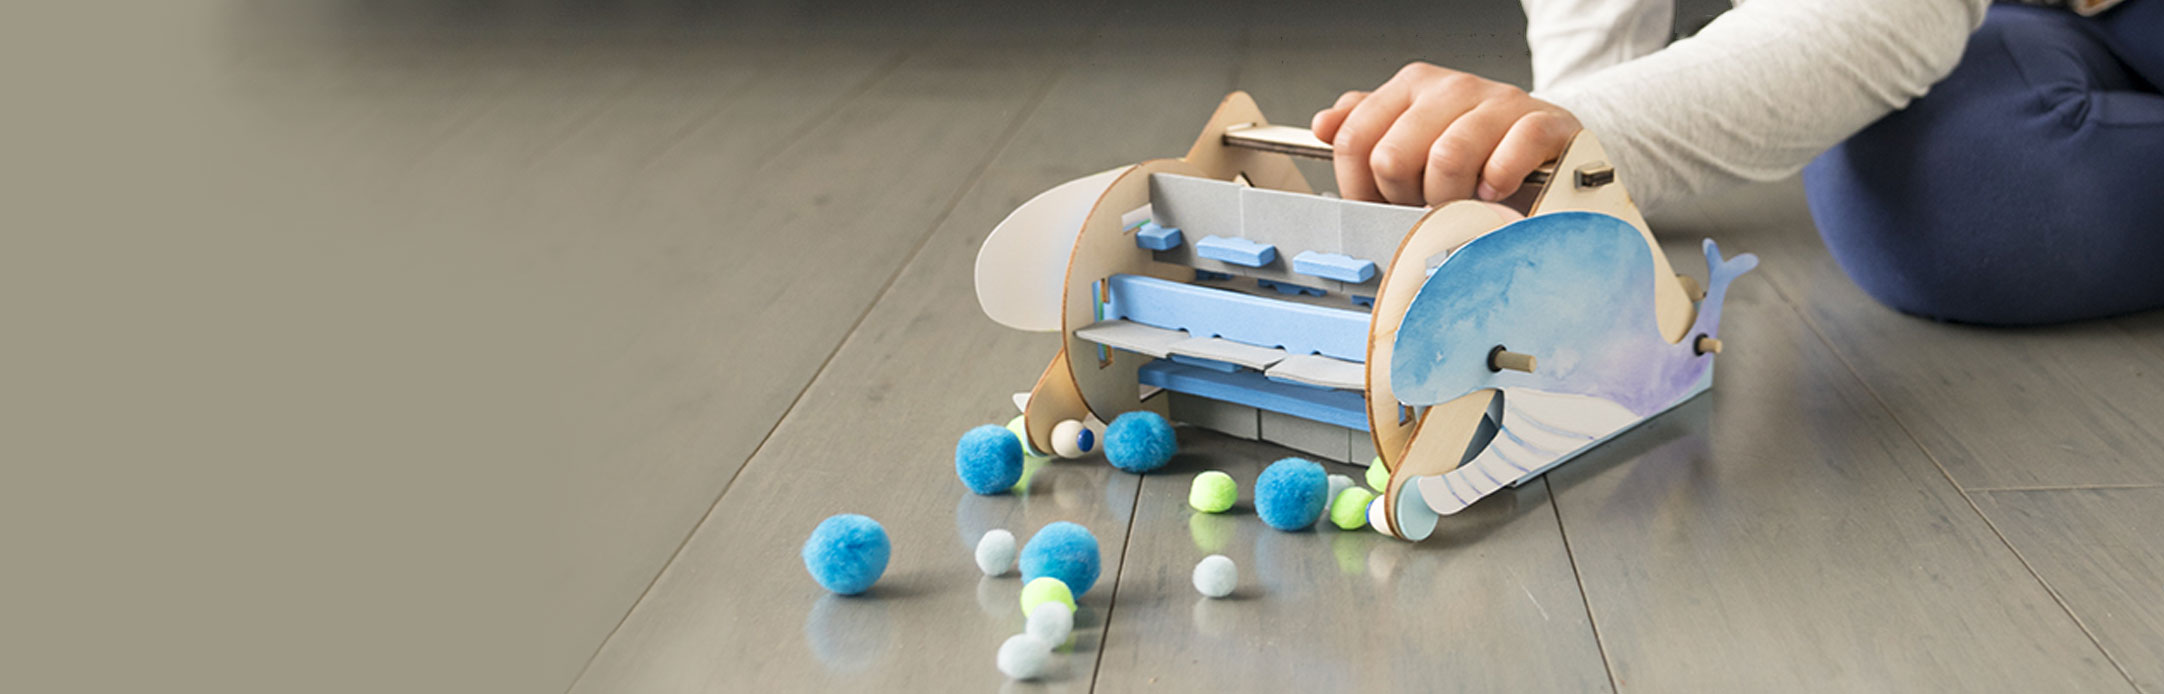 Child playing with Kiwi Crate's Mechanical Sweeper